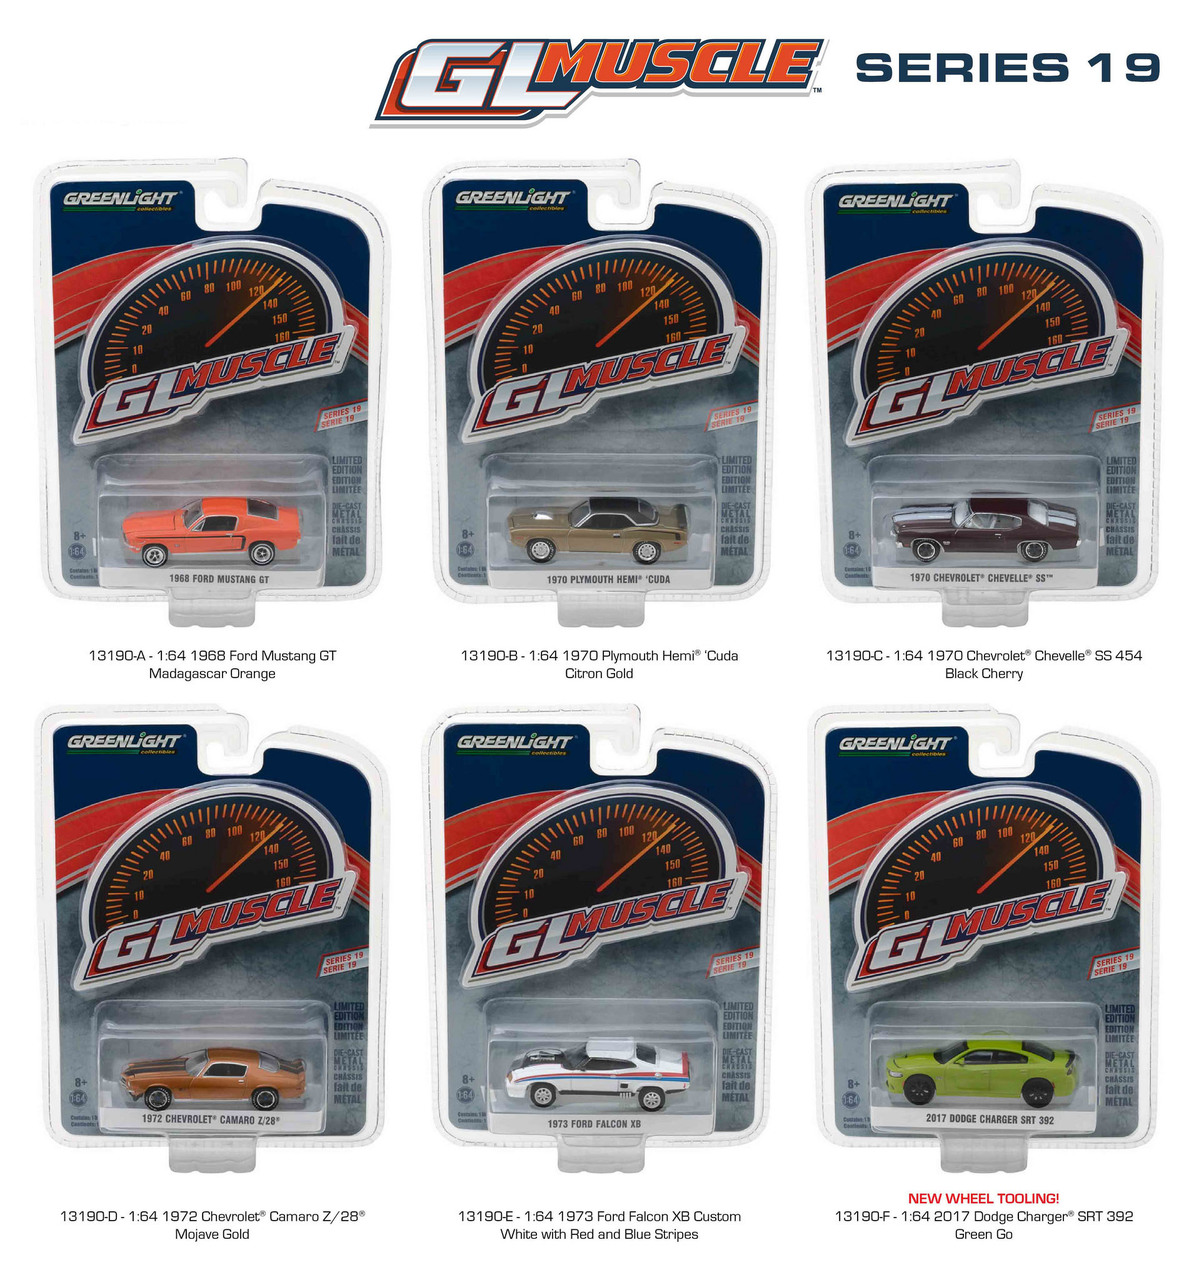 Greenlight Muscle Series 19 6pc Diecast Car Set 1/64 Diecast Model Car by Greenlight